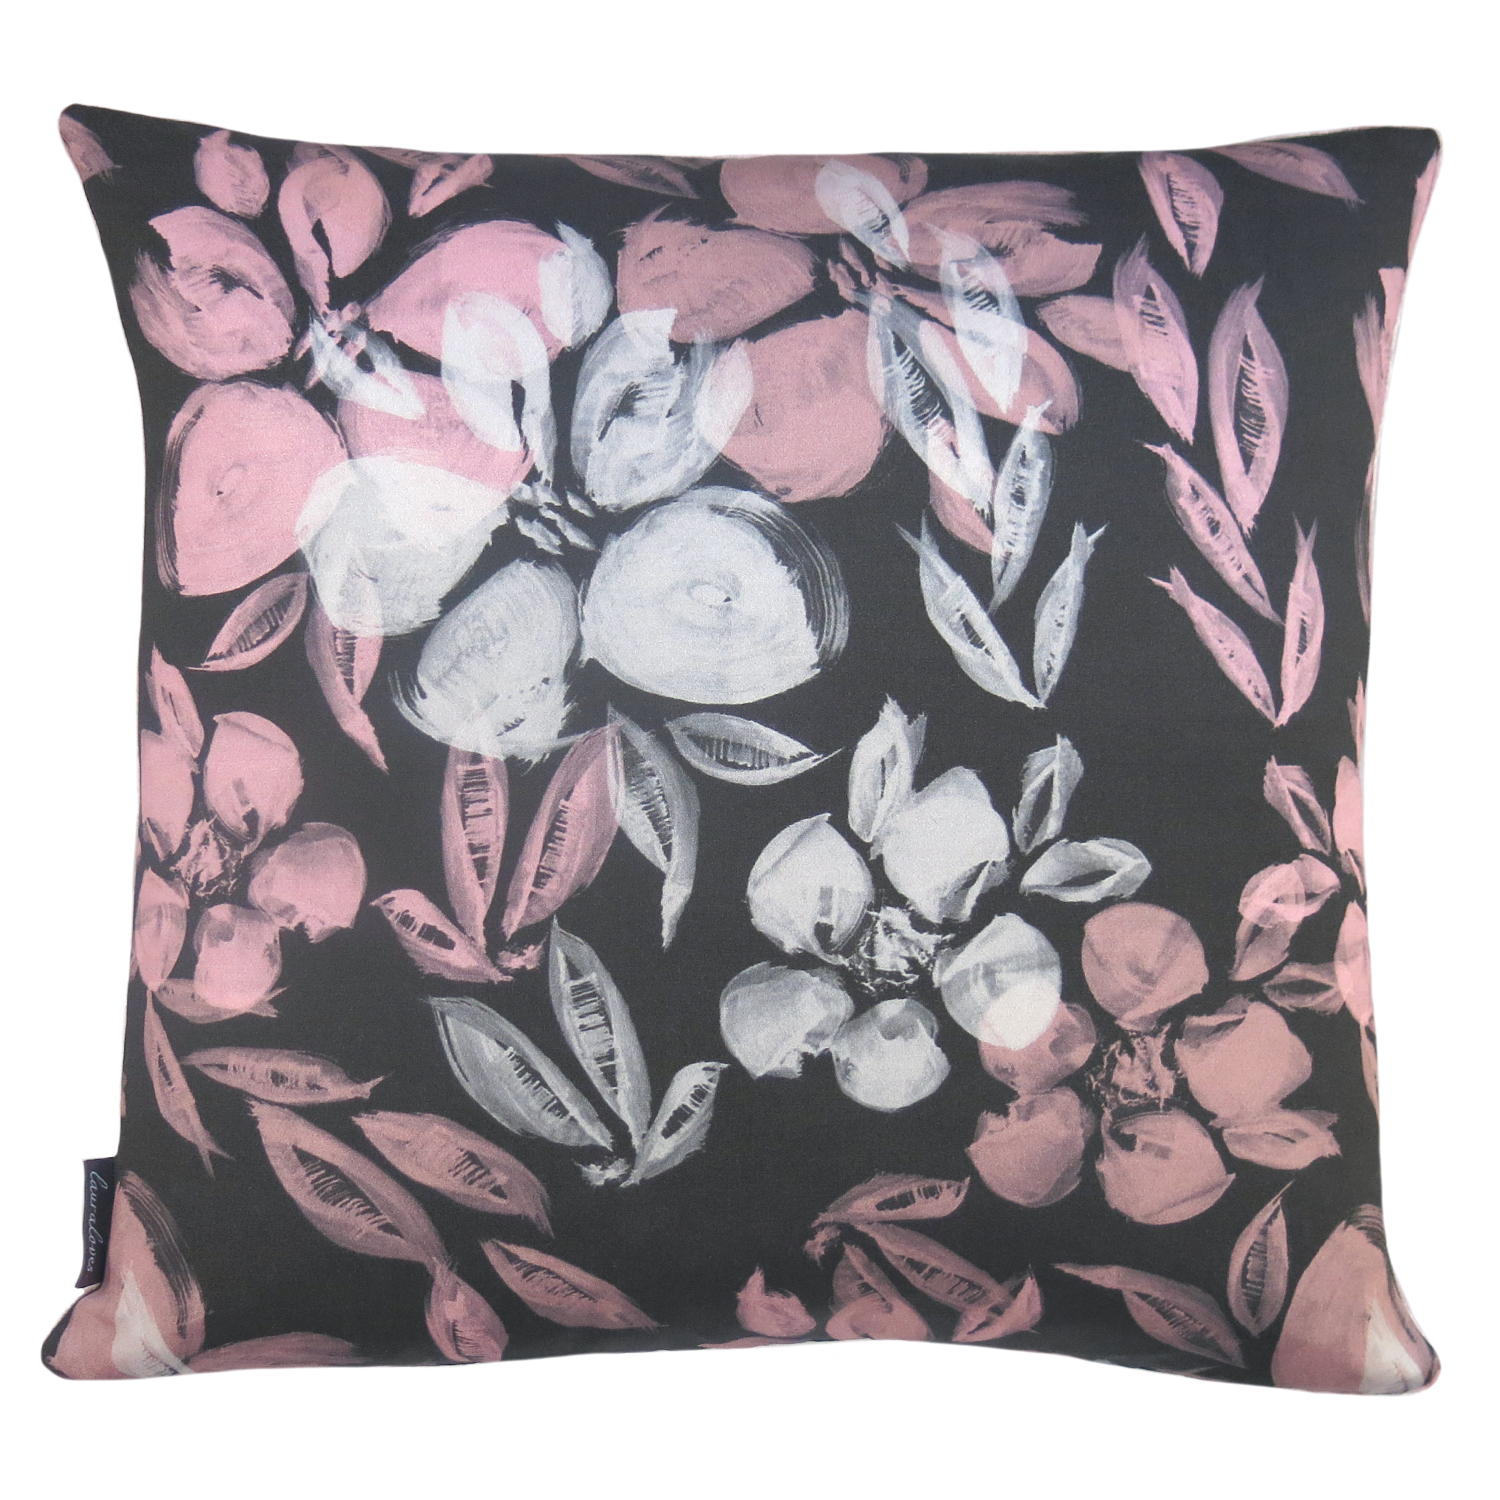 evelyn-floral-silk-cotton-velvet-luxury-cushion-hand-made-pale-pink-grey-white-size-18%22x18%22-hand-made-for-bedroom-or-sofa-designed-by-lauraloves-design.JPG